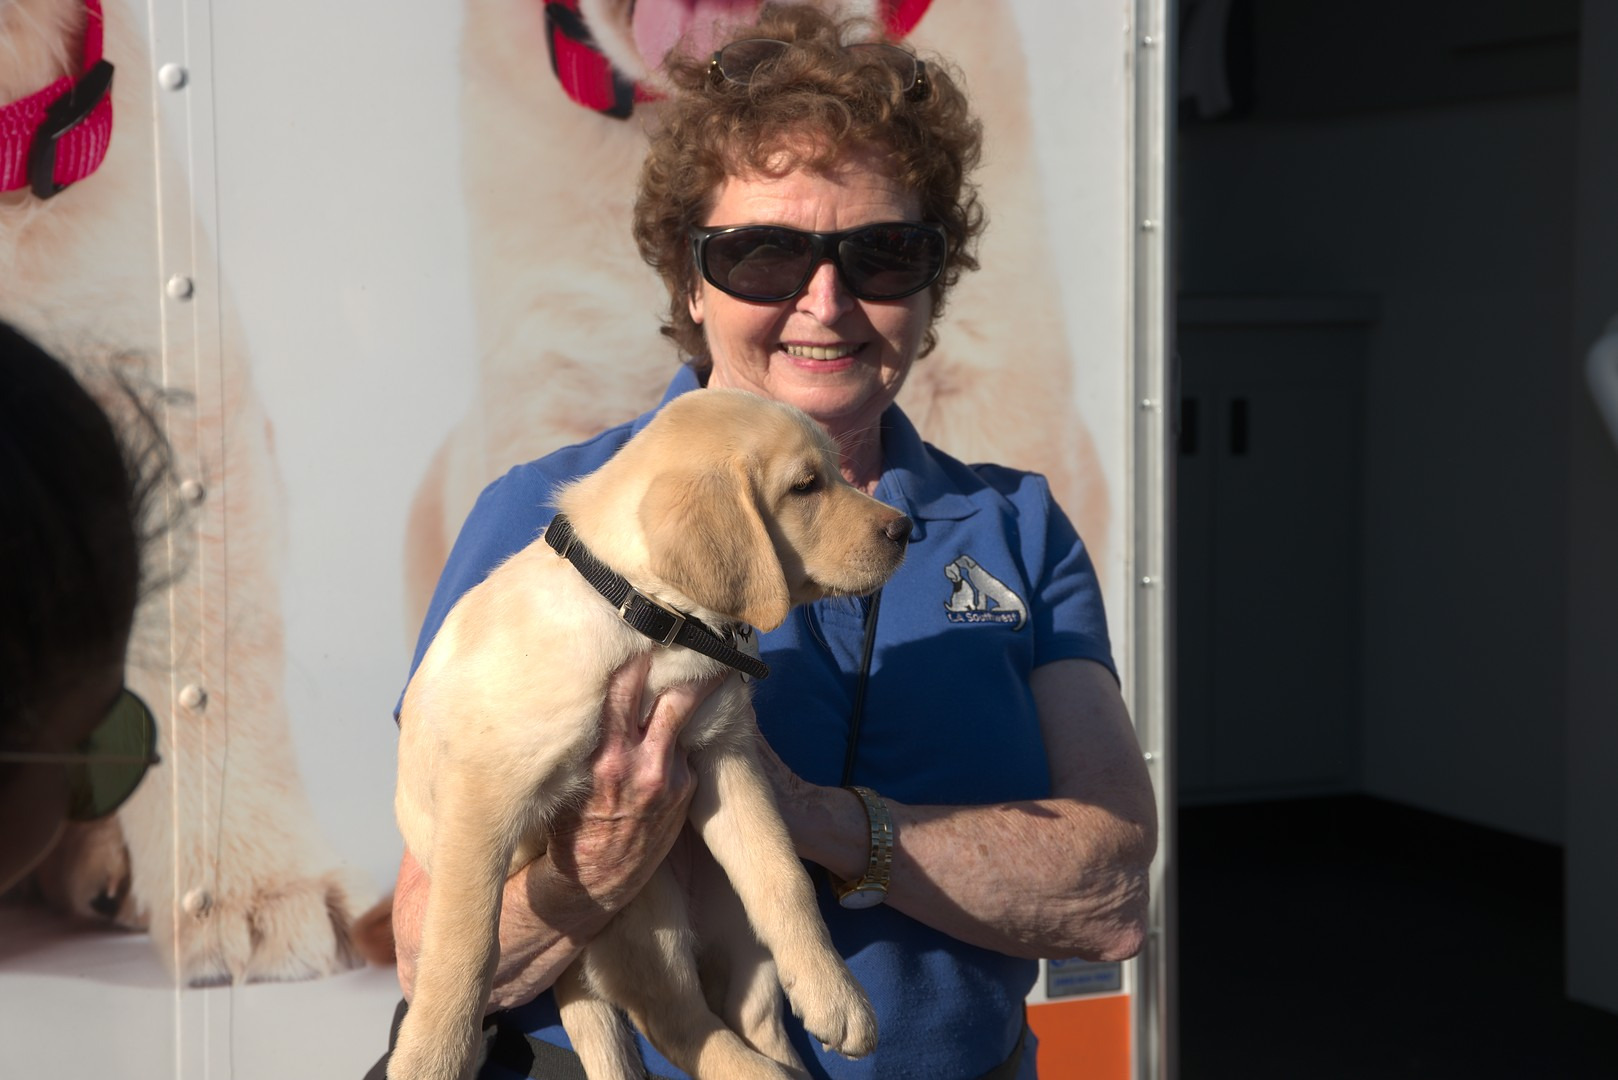 Pat with Mesa at the Puppy Truck